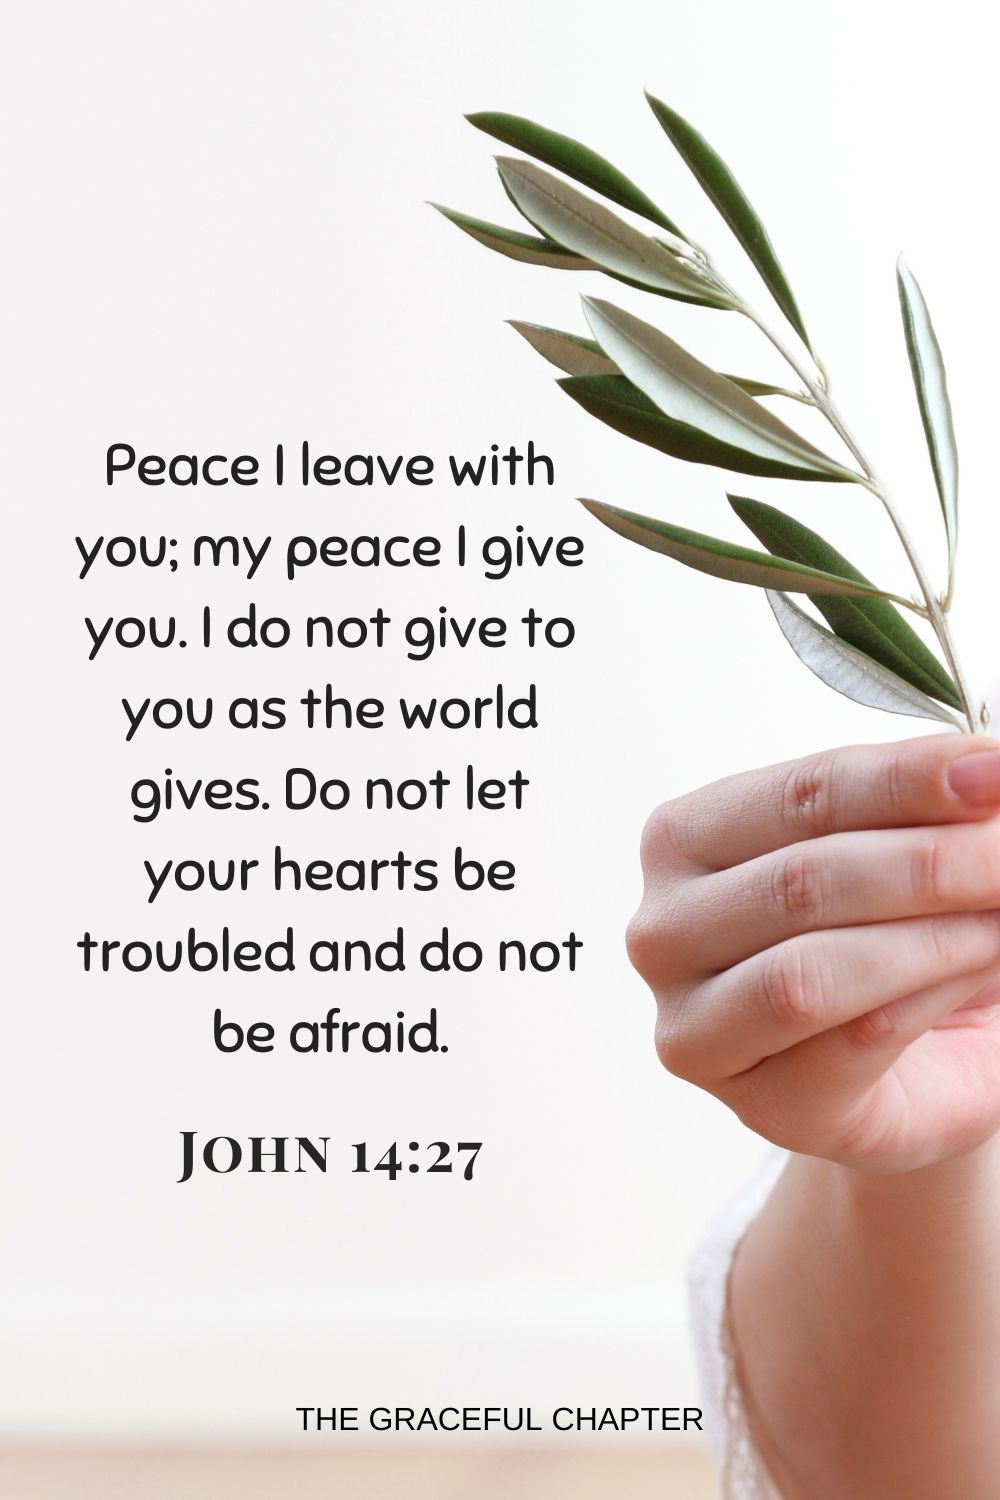 Peace I leave with you; my peace I give you. I do not give to you as the world gives. Do not let your hearts be troubled and do not be afraidPeace I leave with you; my peace I give you. I do not give to you as the world gives. Do not let your hearts be troubled and do not be afraid. John 14:27